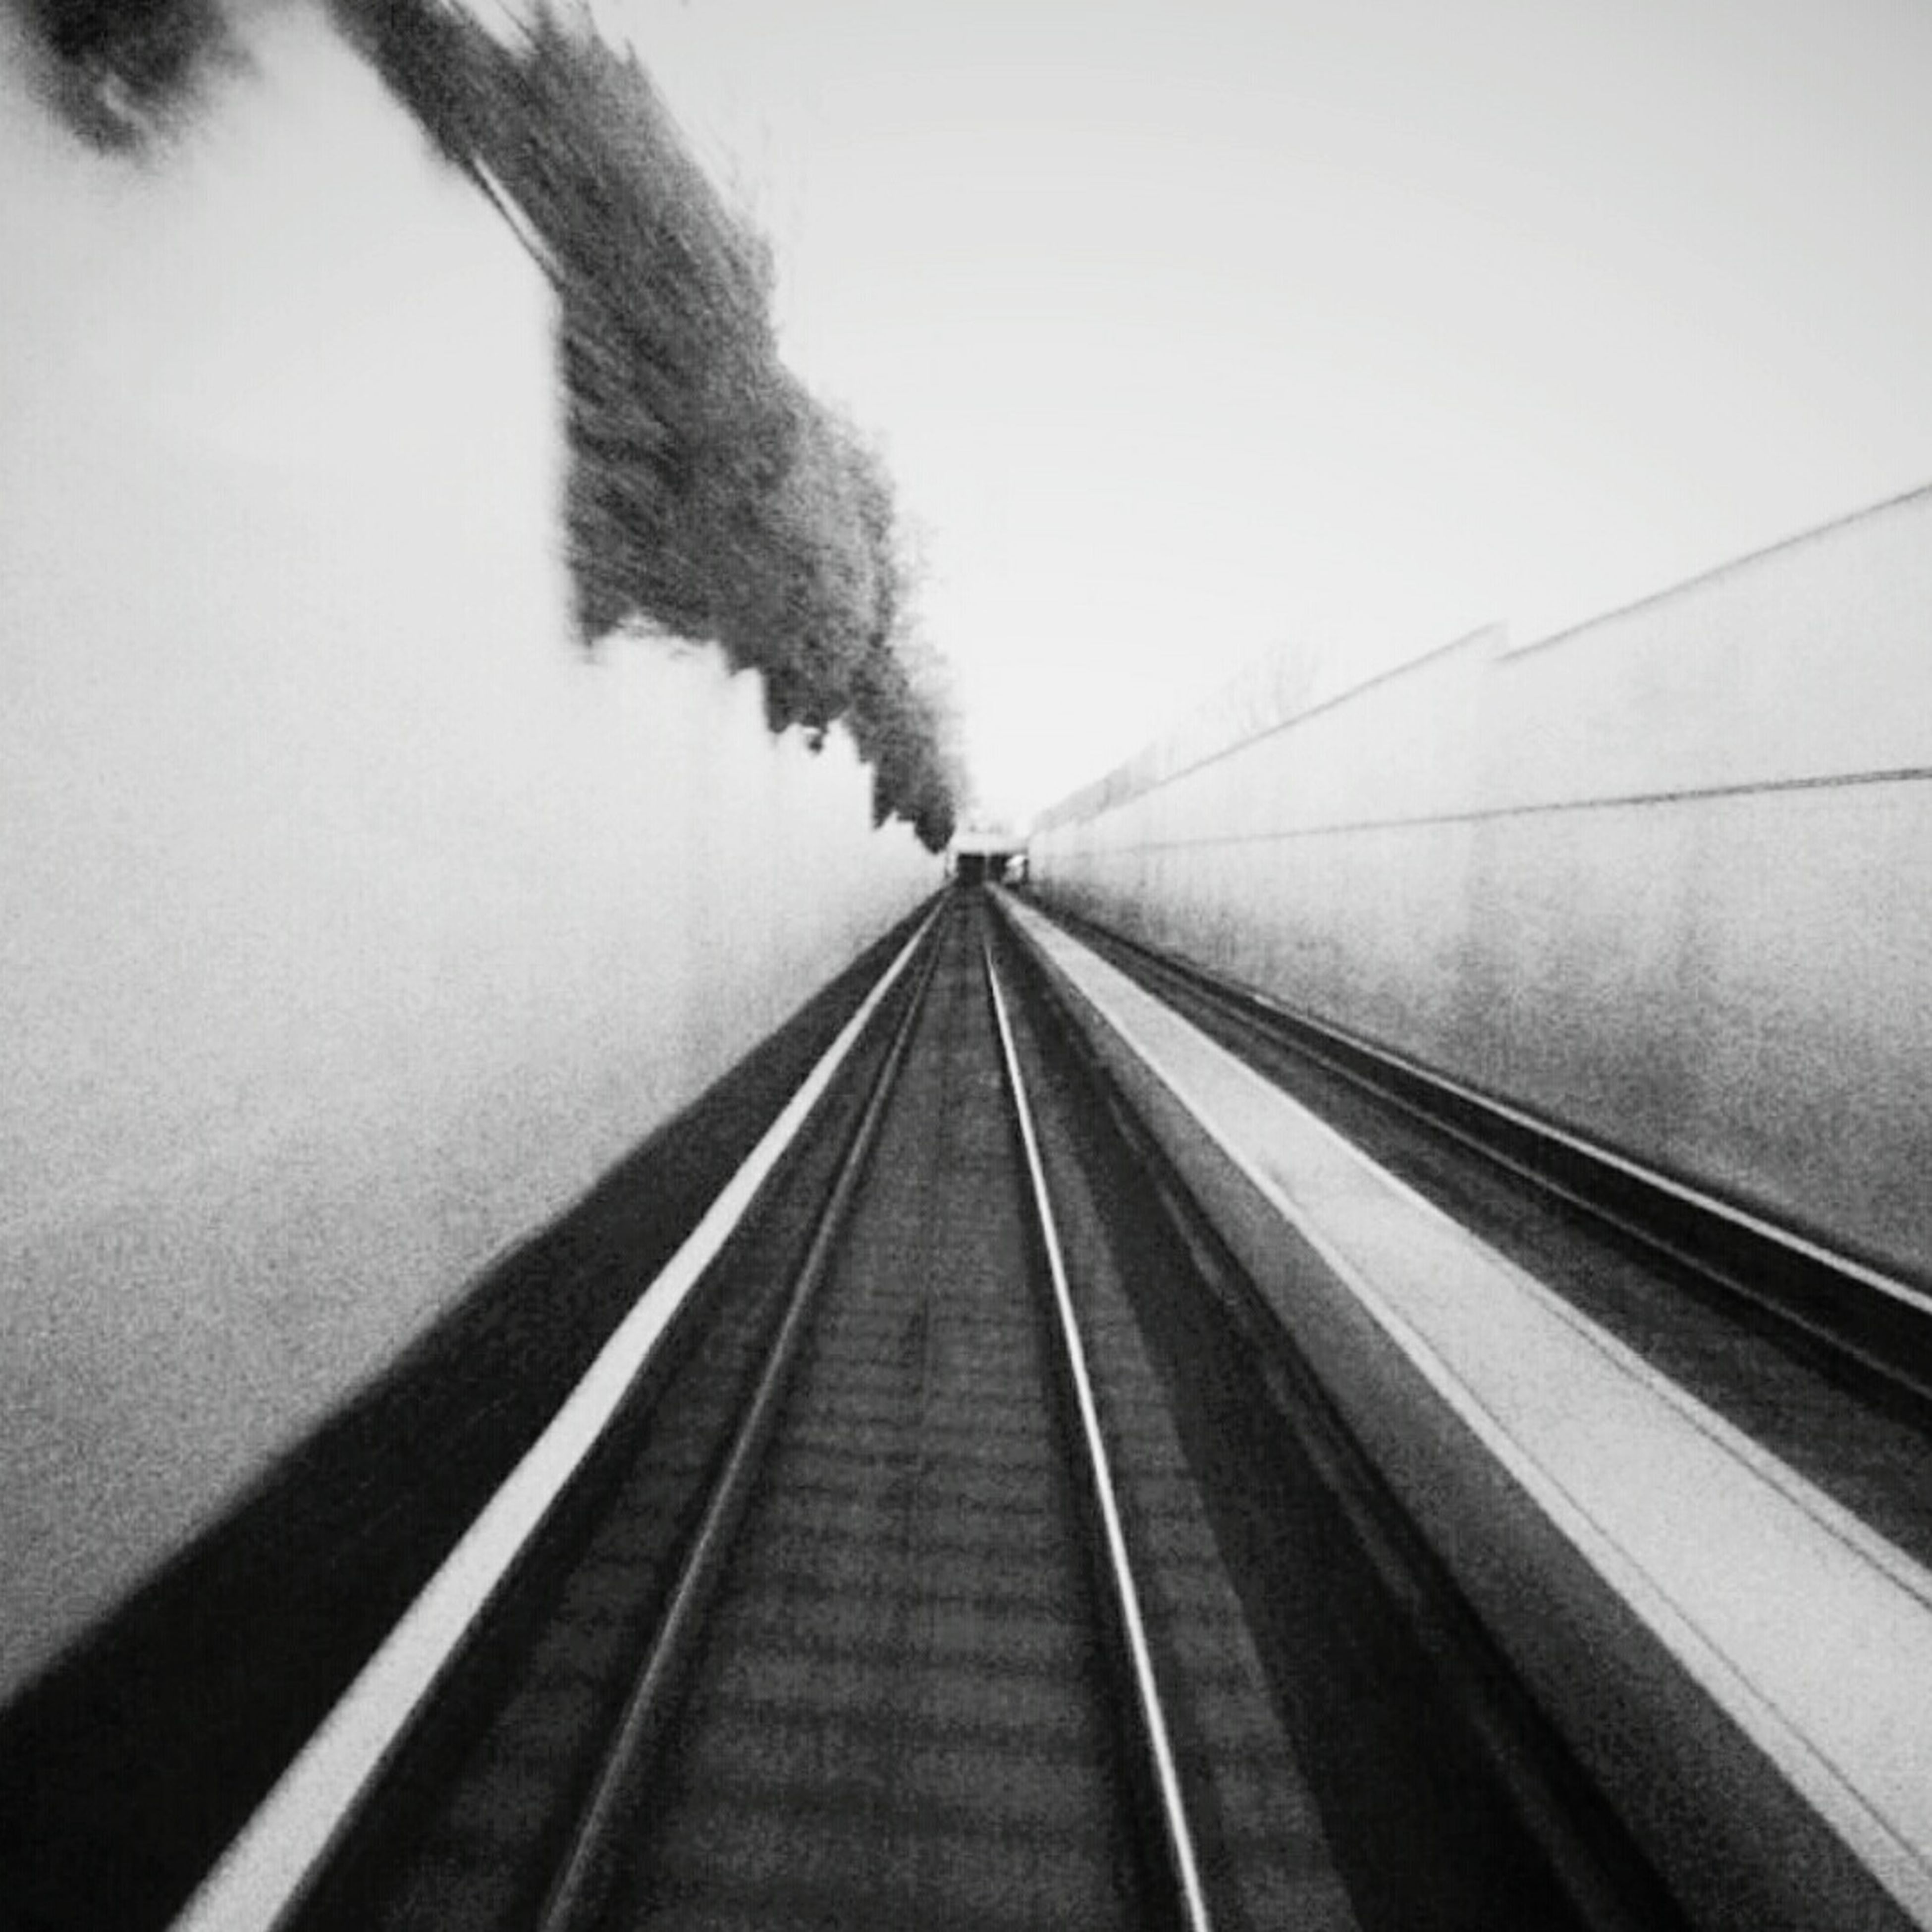 the way forward, diminishing perspective, railroad track, transportation, vanishing point, rail transportation, clear sky, railway track, connection, indoors, public transportation, built structure, long, straight, architecture, tunnel, railroad station, railroad station platform, no people, day